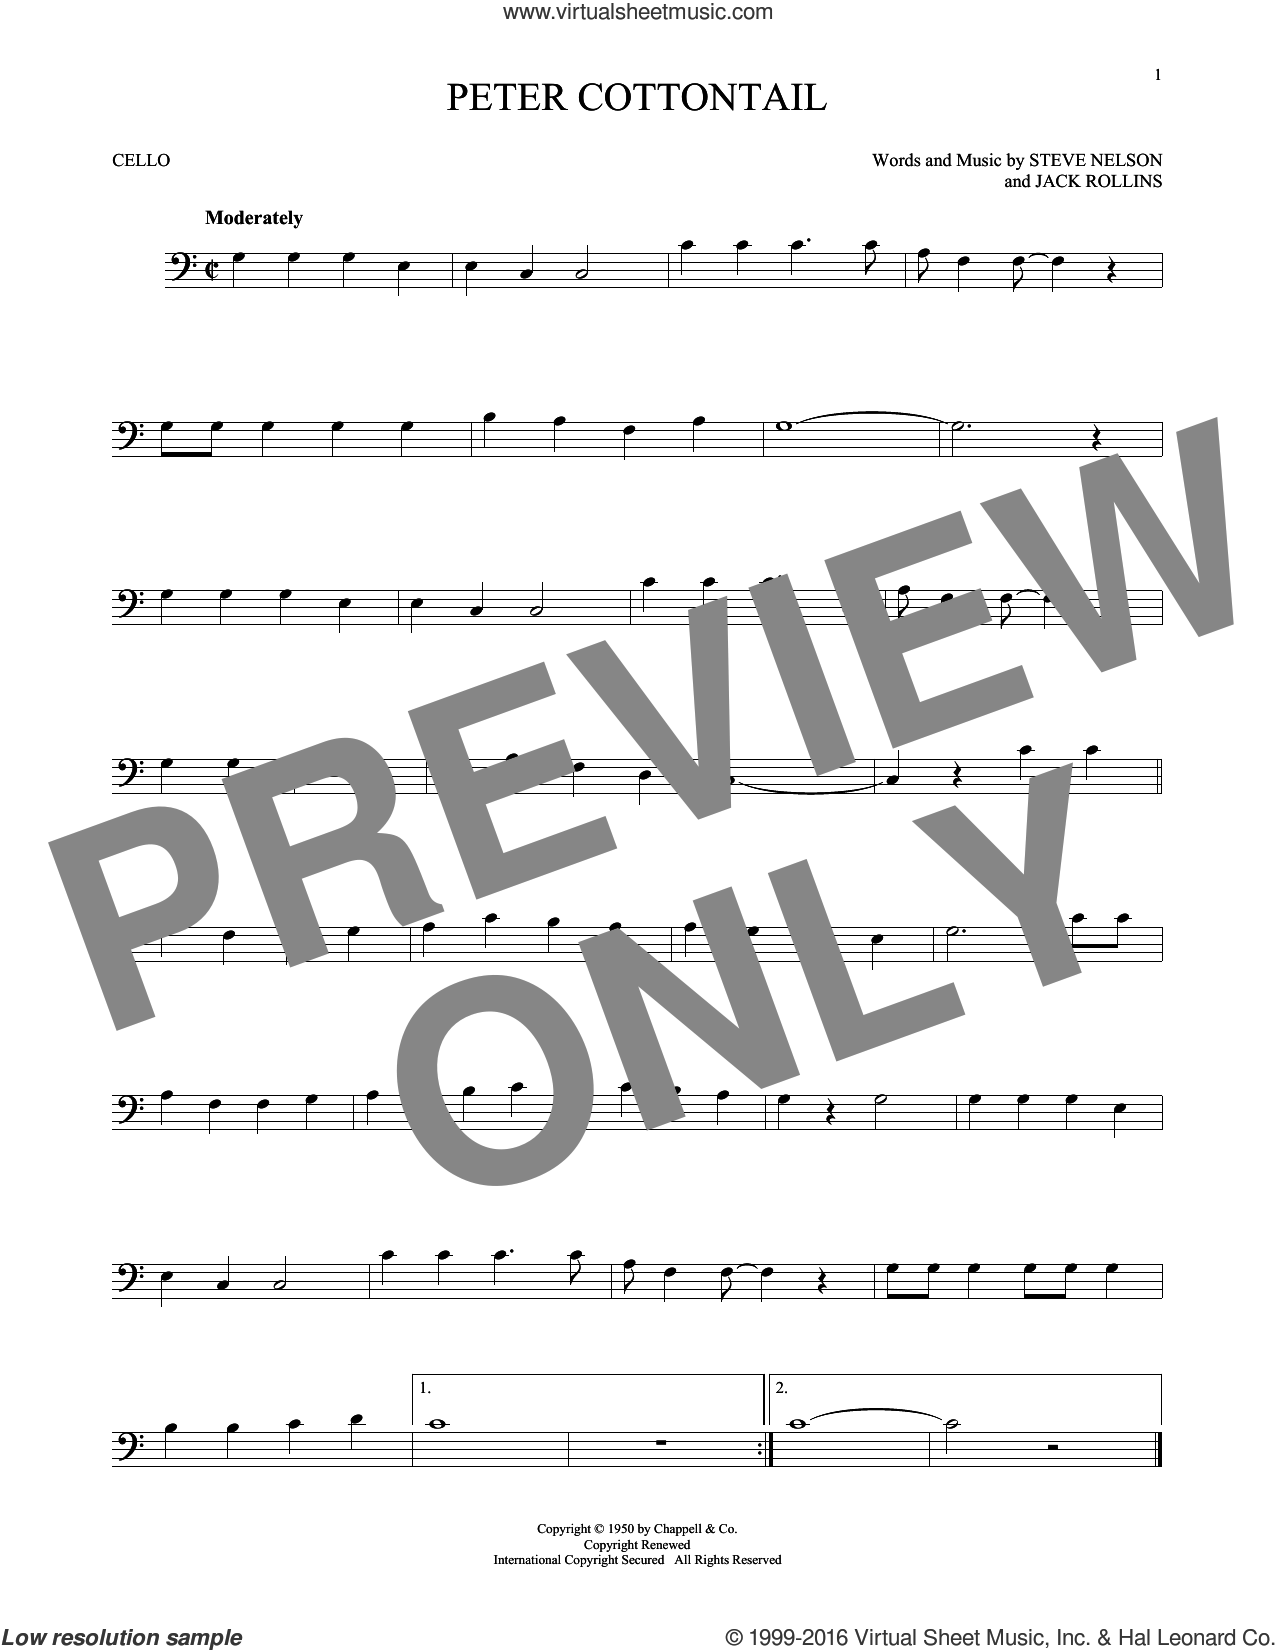 Peter Cottontail sheet music for cello solo by Steve Nelson & Jack Rollins, Jack Rollins and Steve Nelson, intermediate skill level